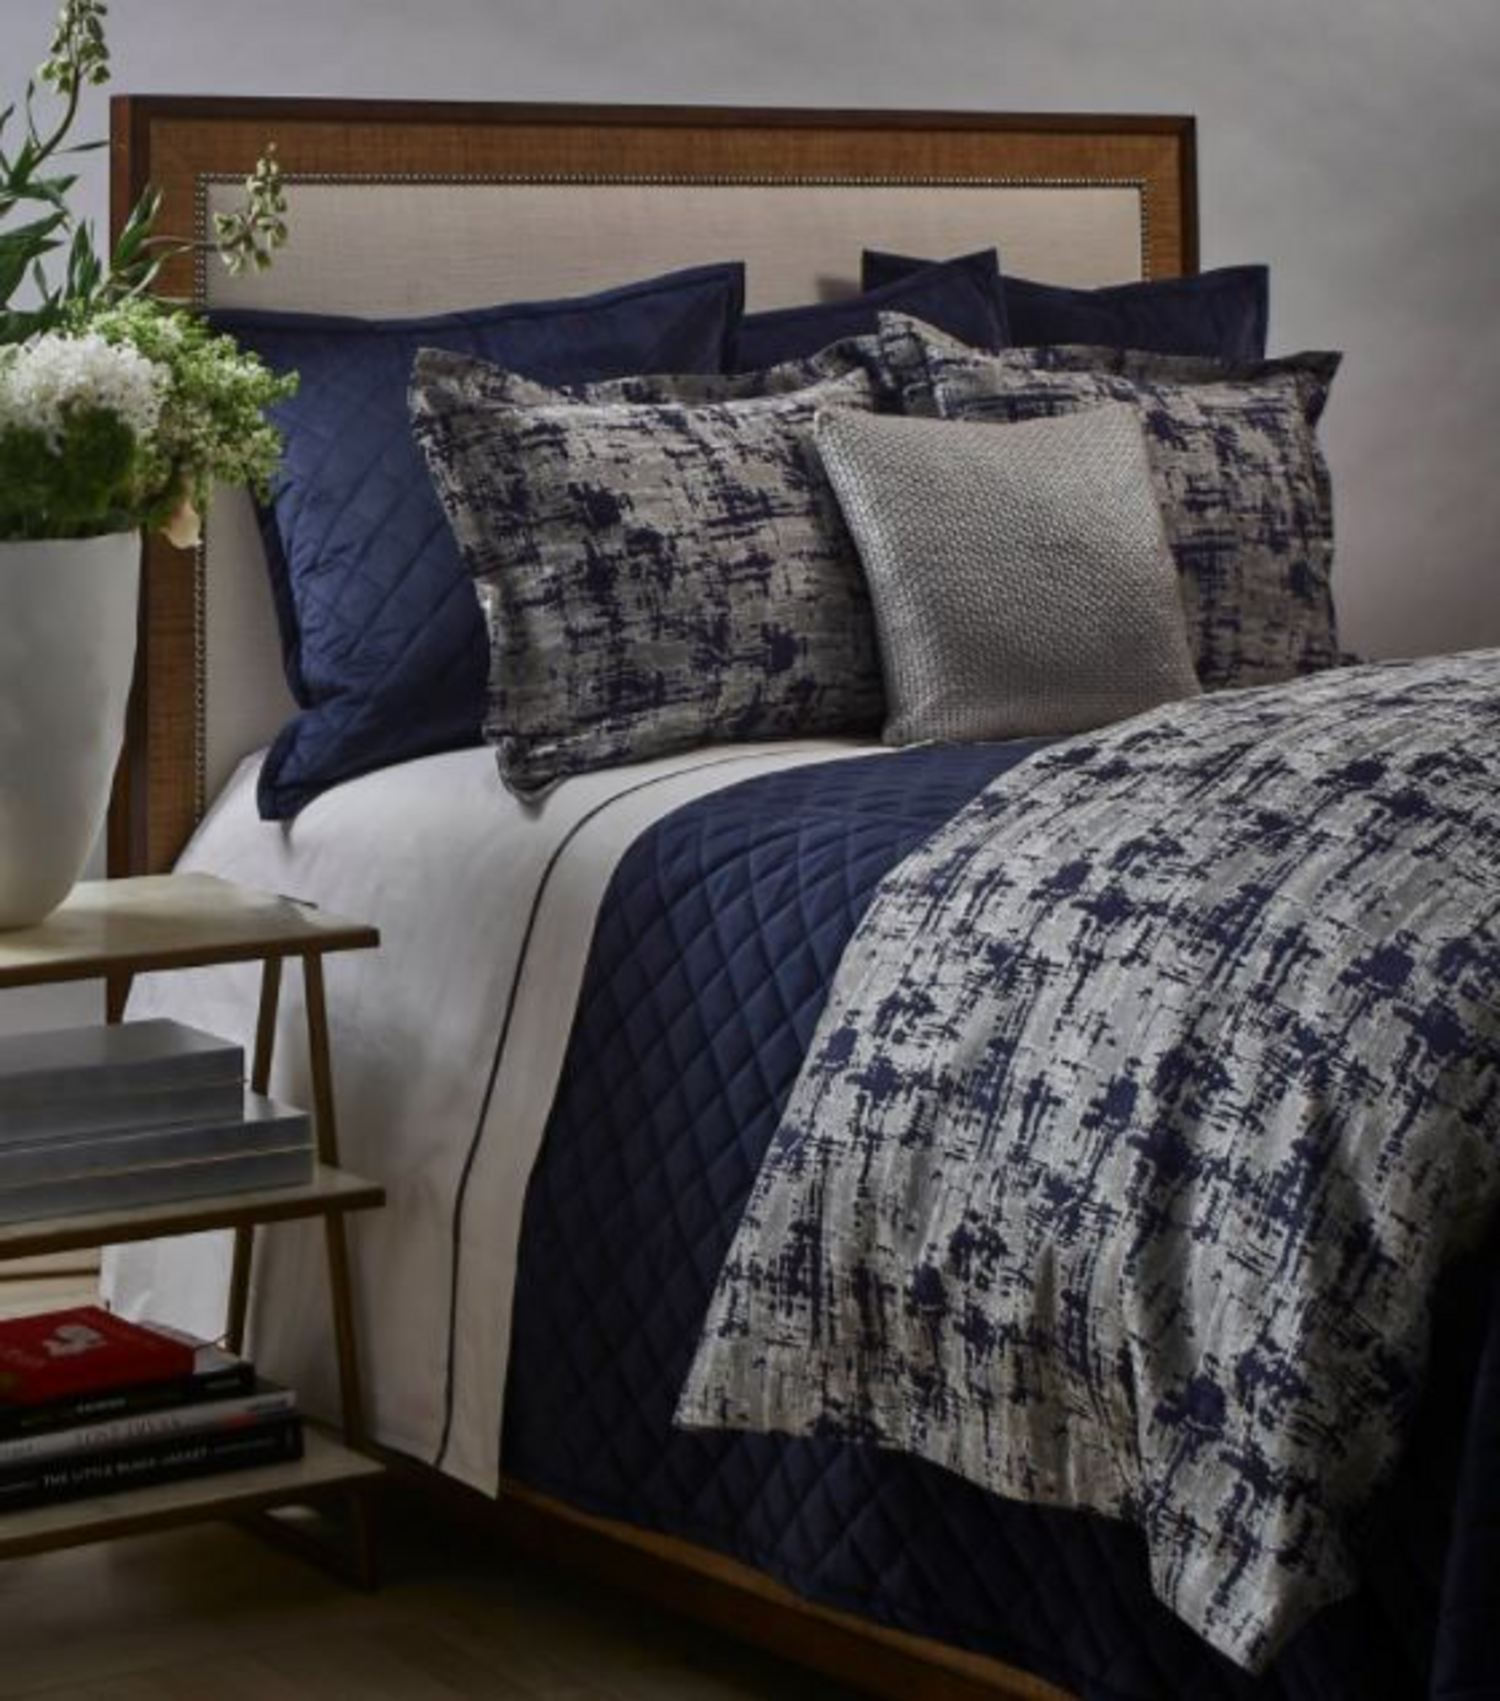 scratch navysilver by ann gish art of home bedding - Navy Bedding